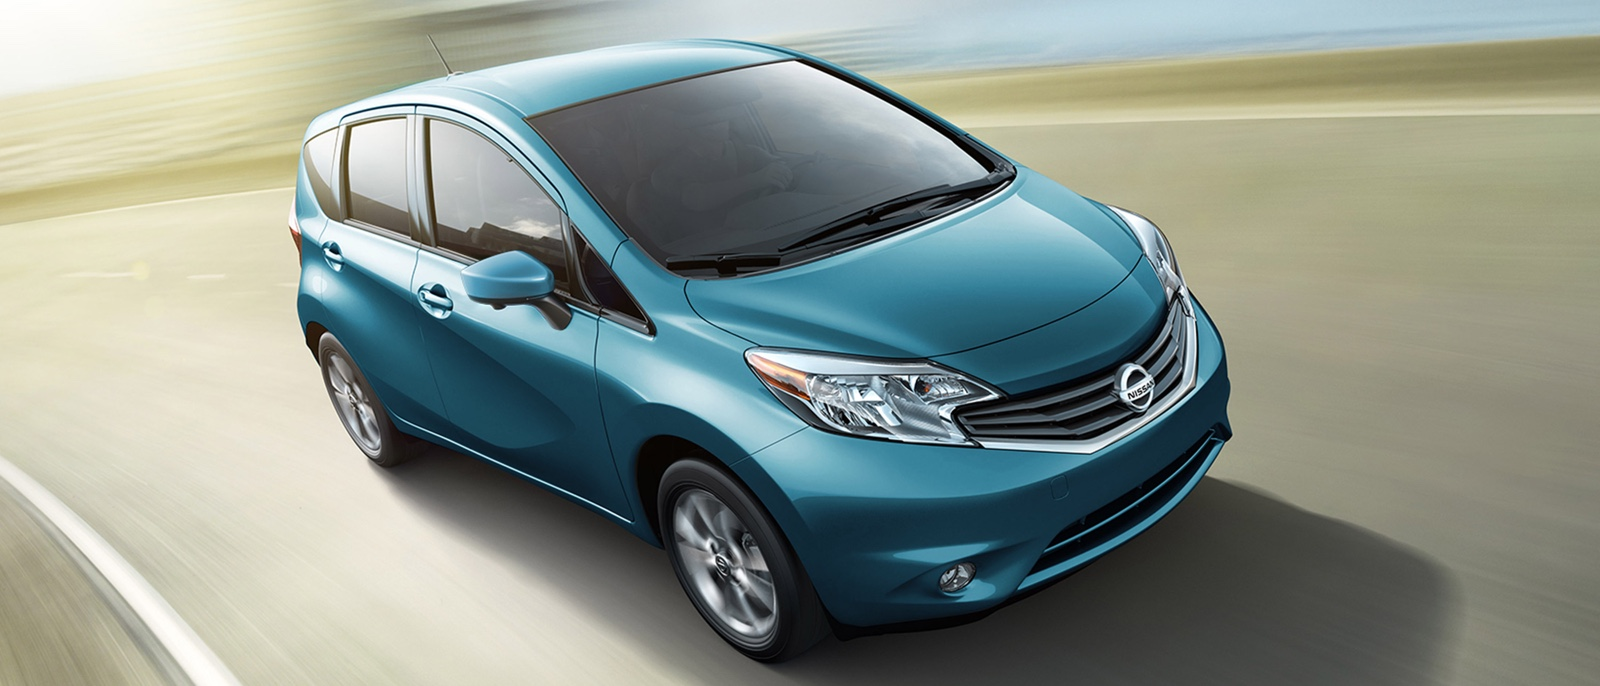 2015 Nissan Versa Note Slider